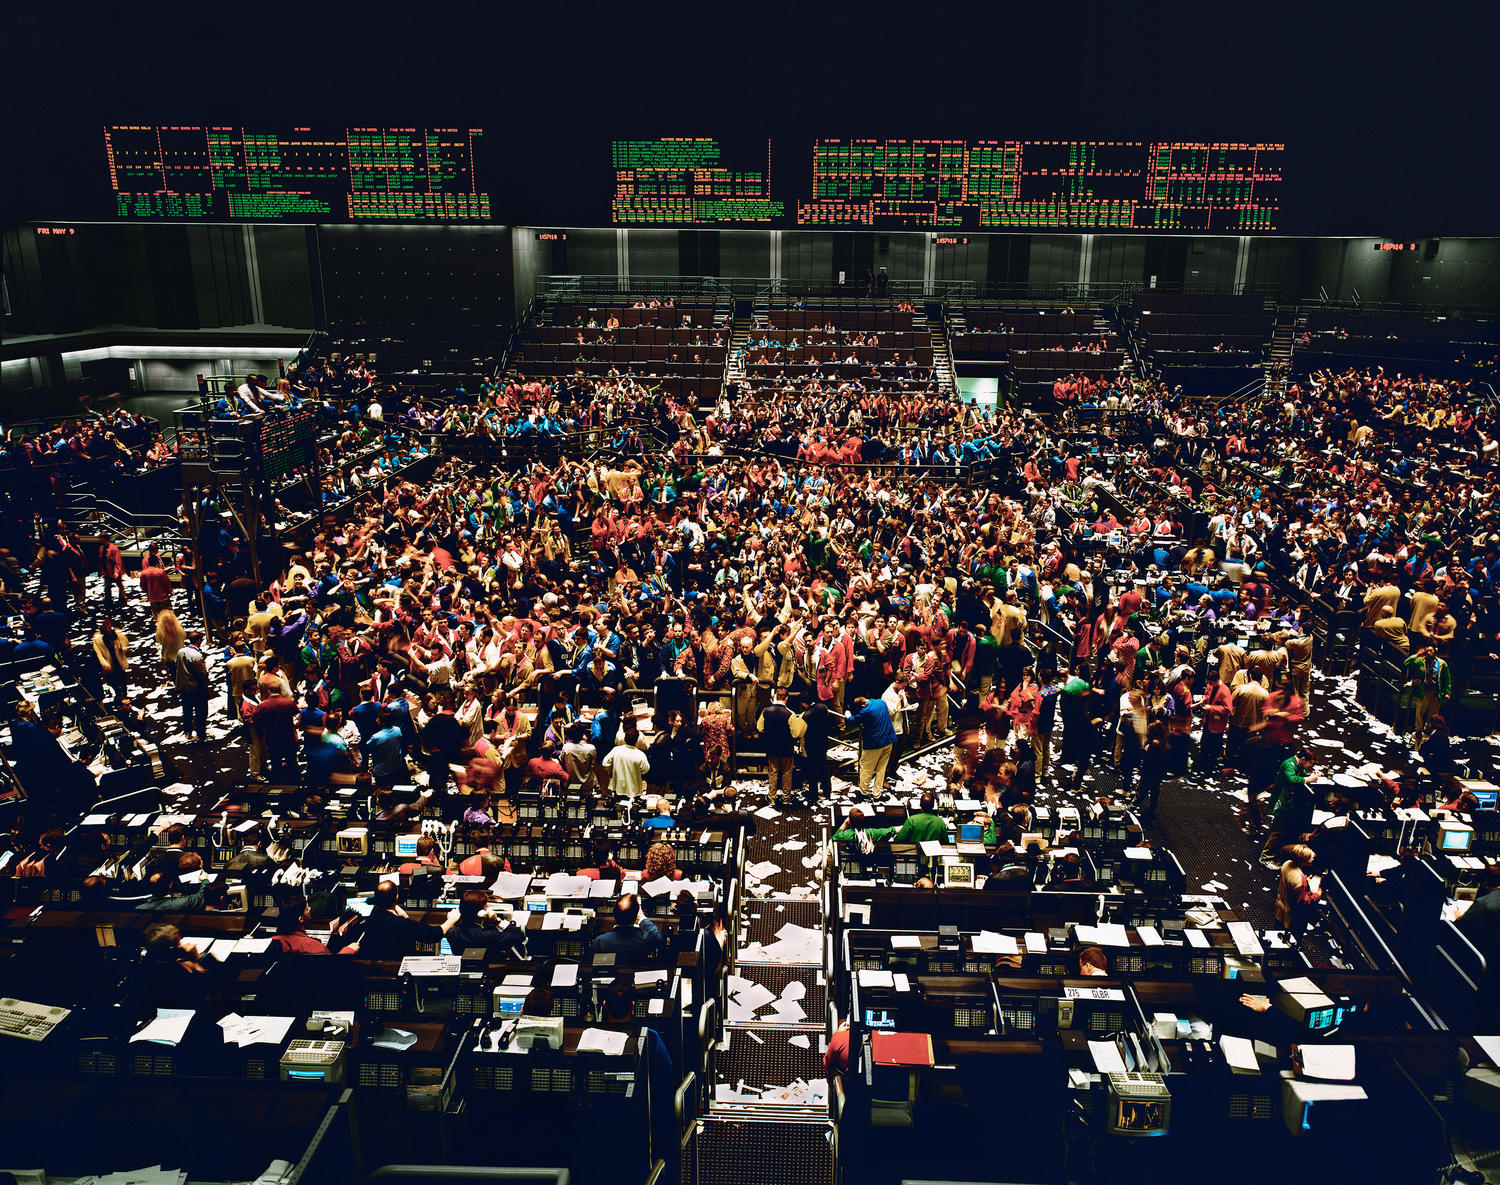 10.<br />Fotó: Andreas Gursky: Chicago Board of Trade (1997)	<br />$2,507,755	<br />June 23, 2013	<br />Sotheby's London